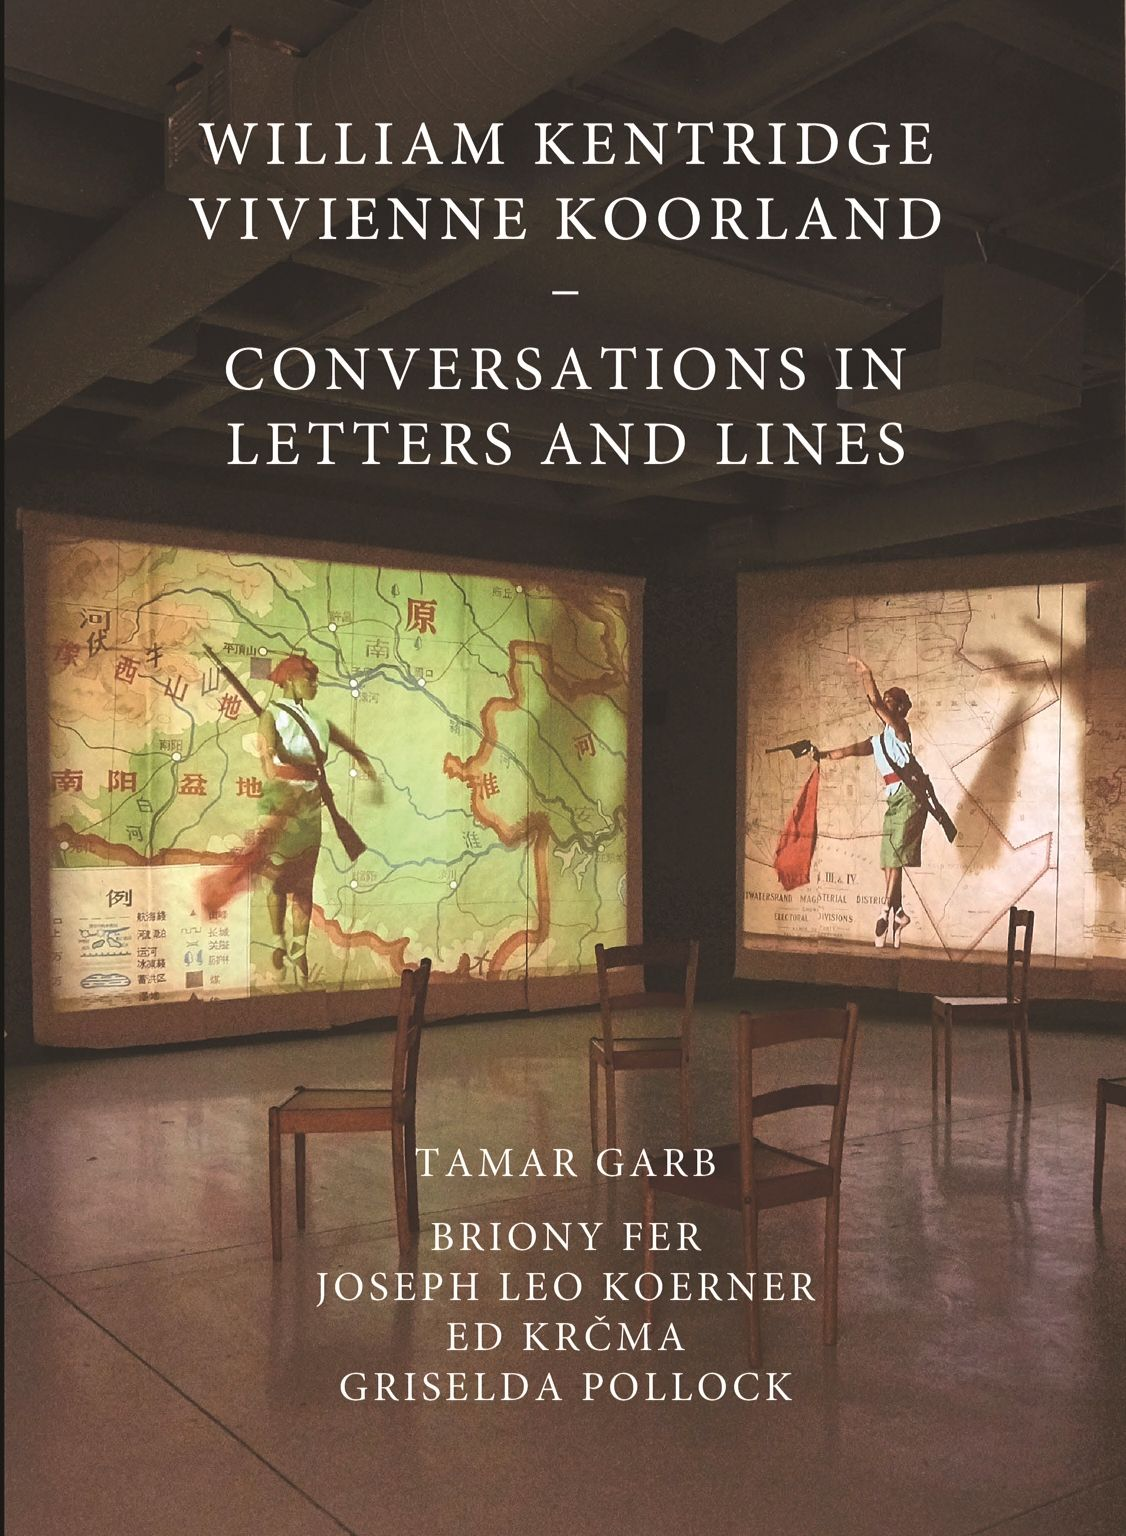 William Kentridge and Vivienne Koorland